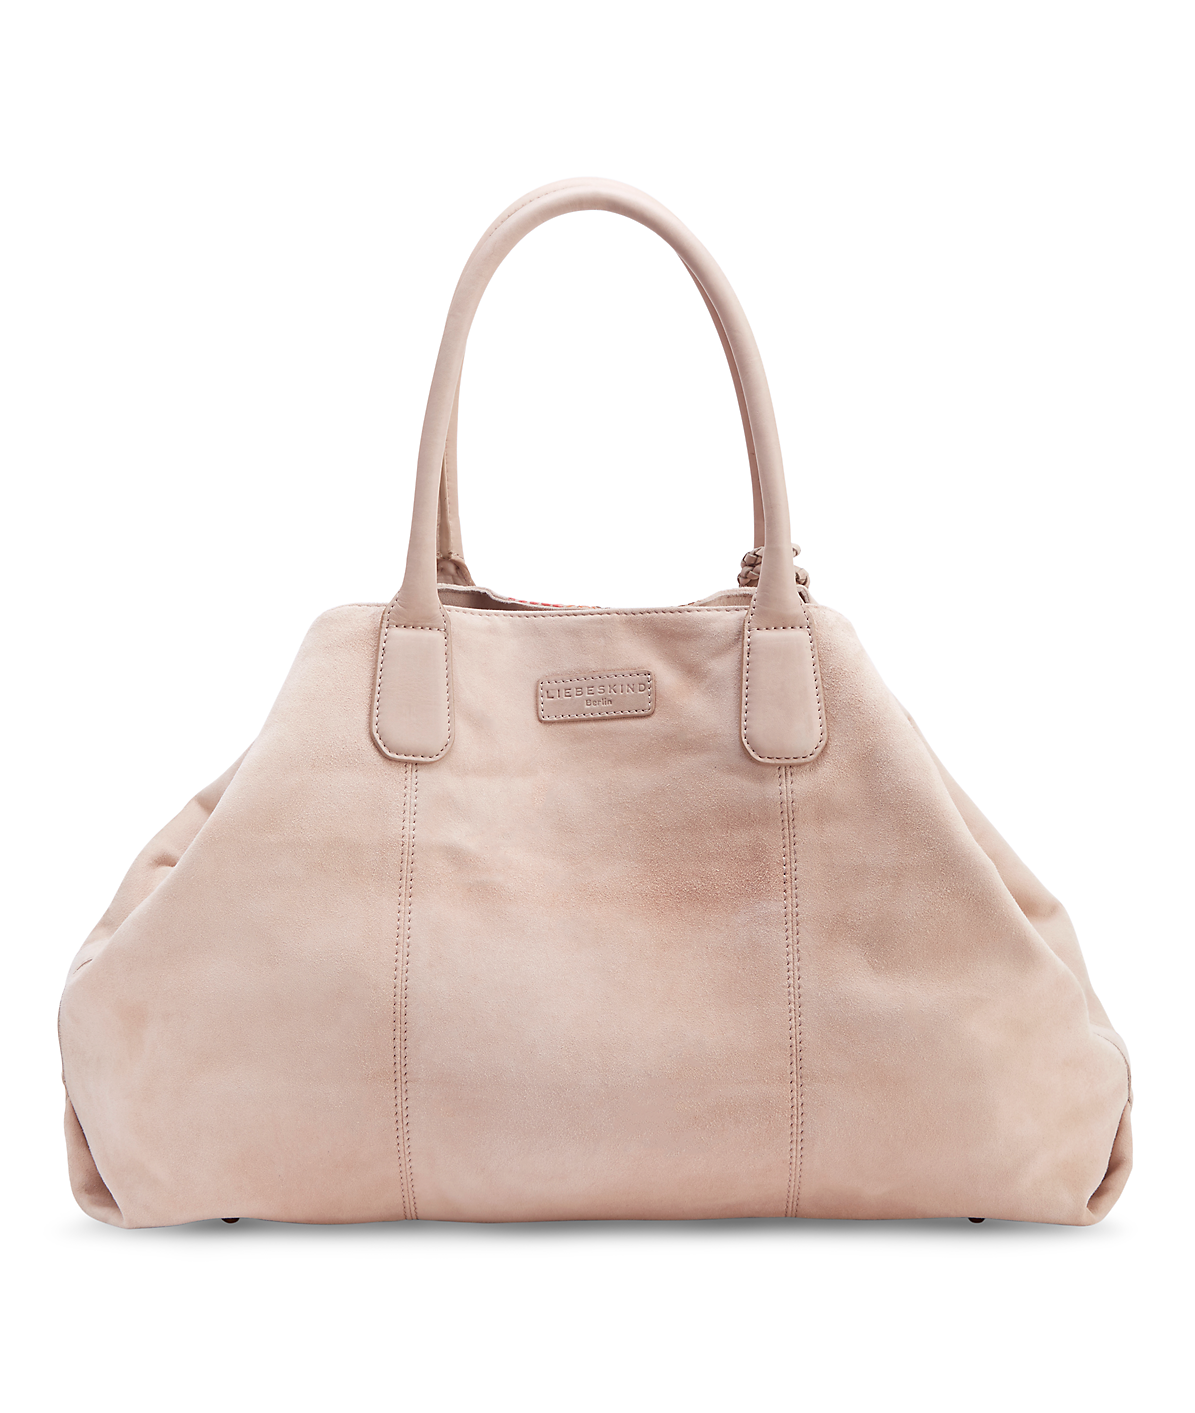 Chelsea shopper bag from liebeskind